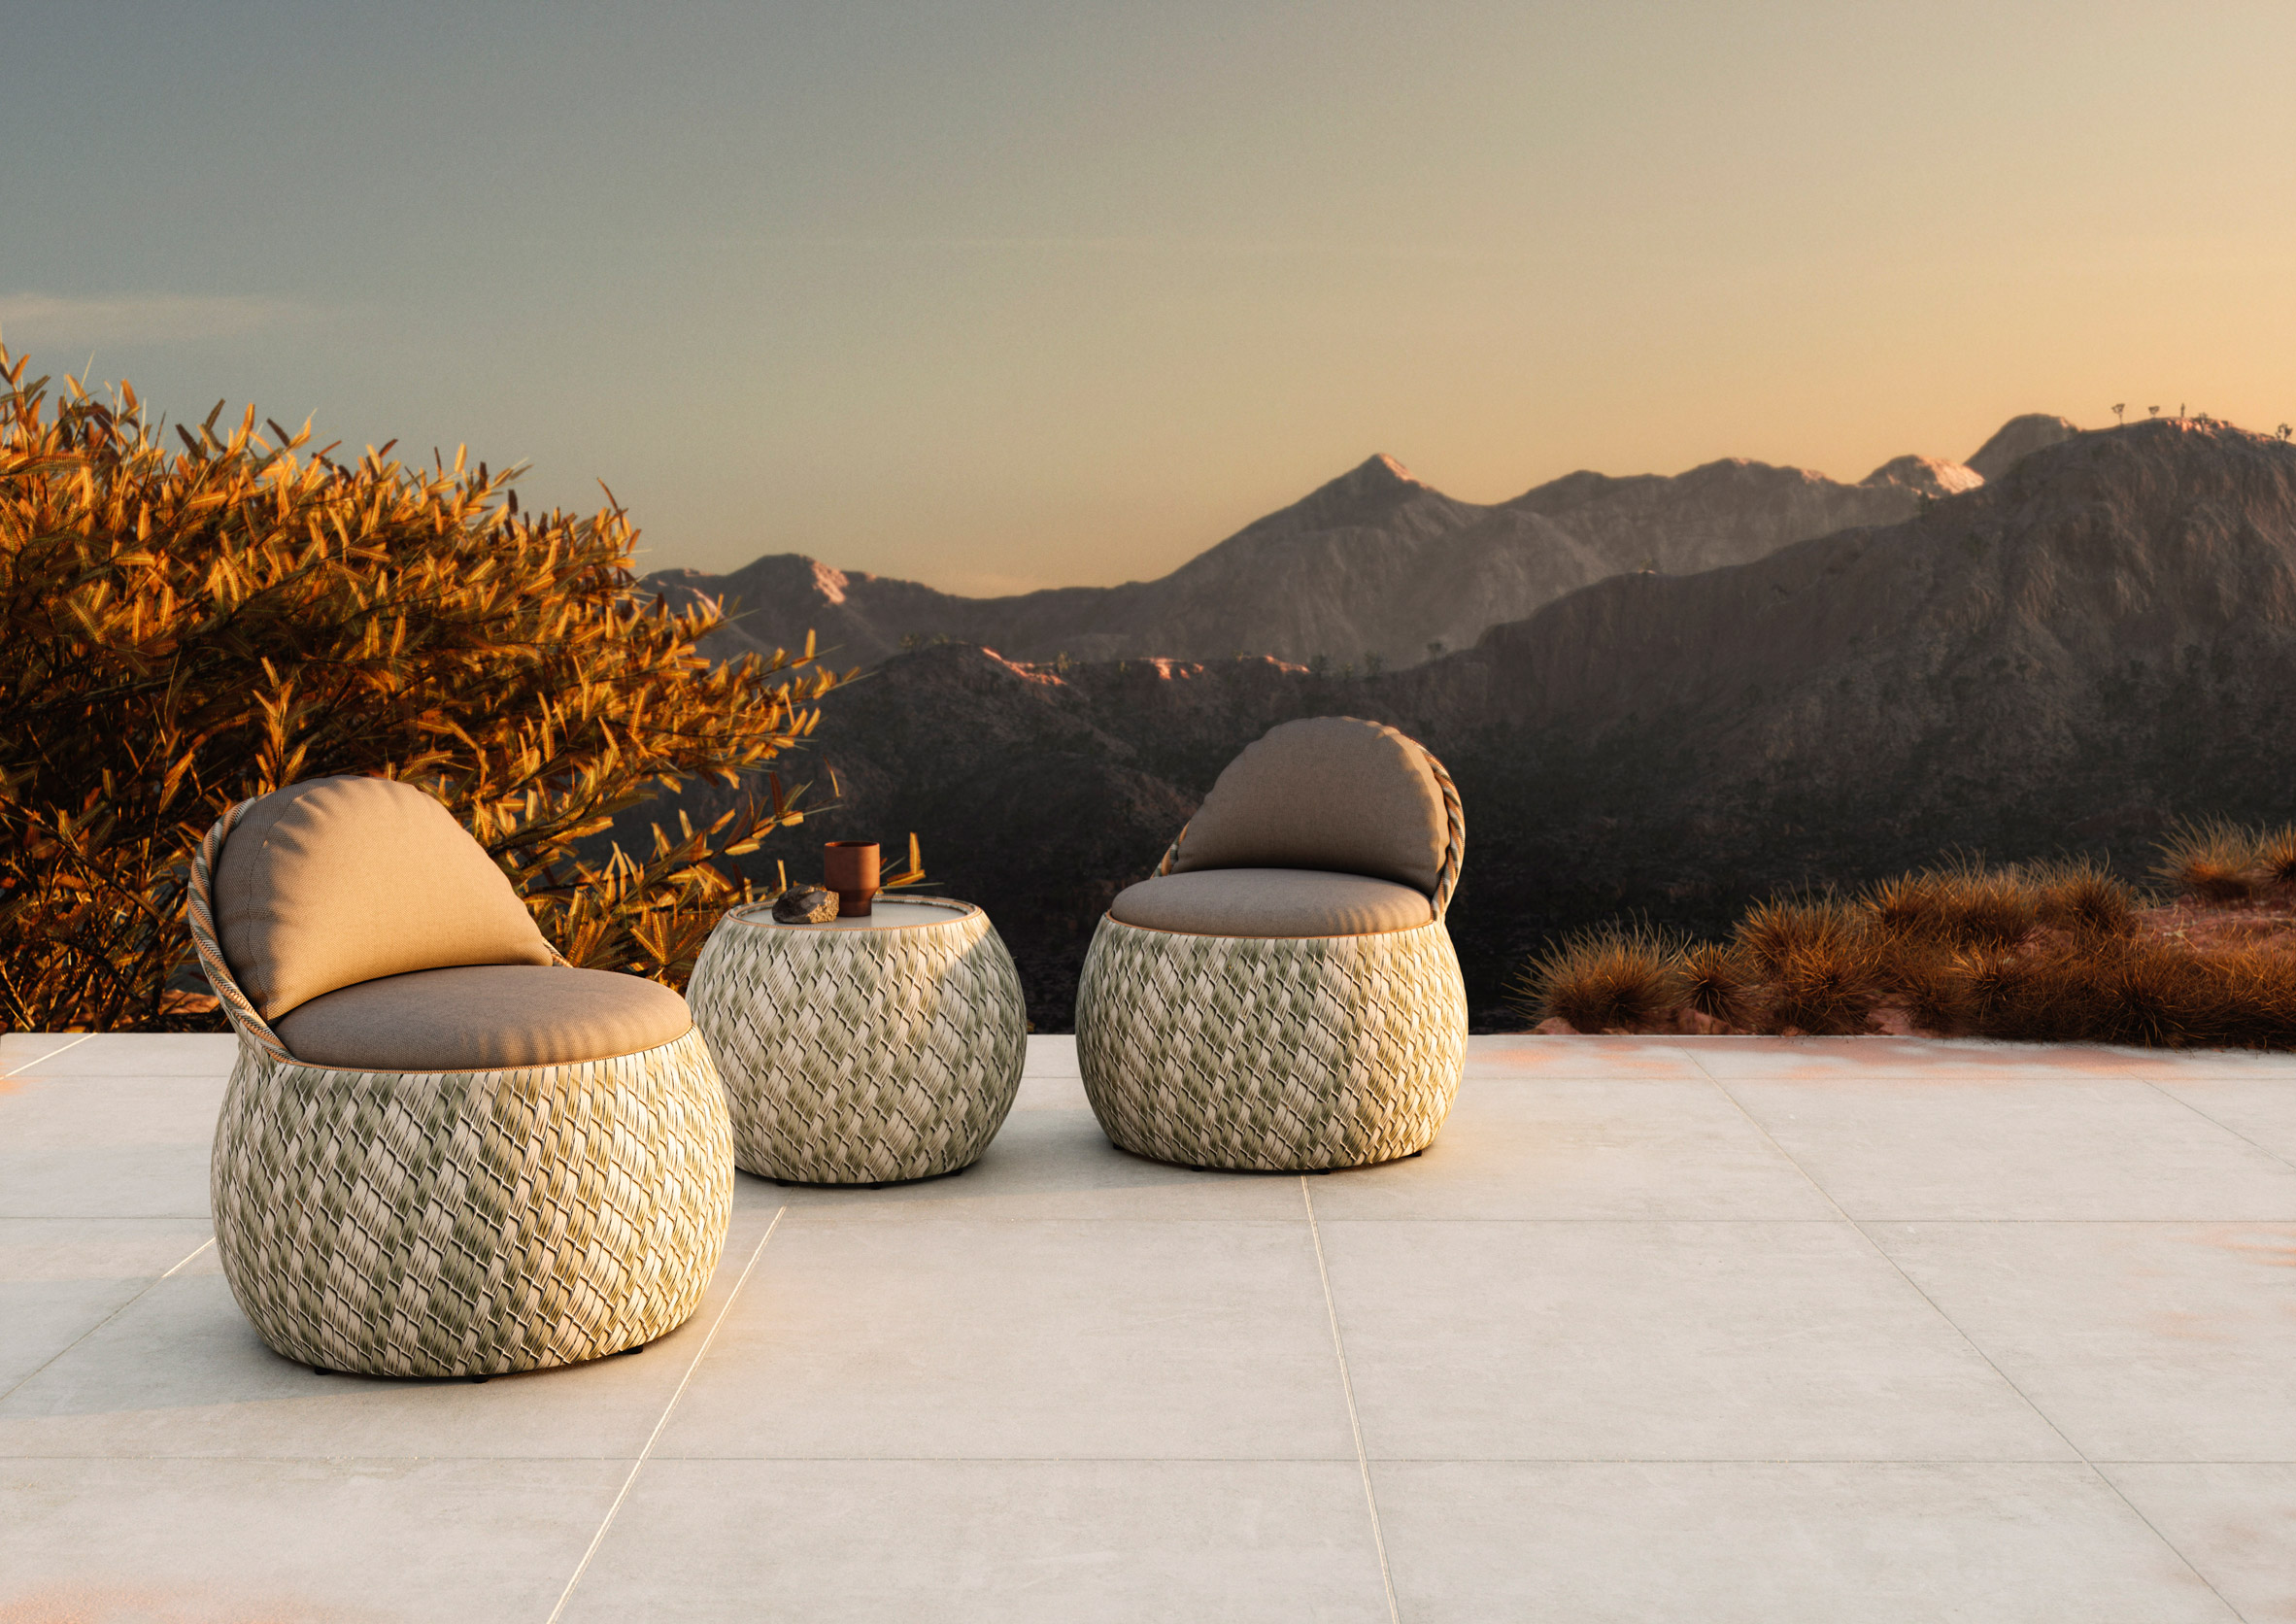 The Dala collection by Stephen Burks for Dedon in an outdoor environment